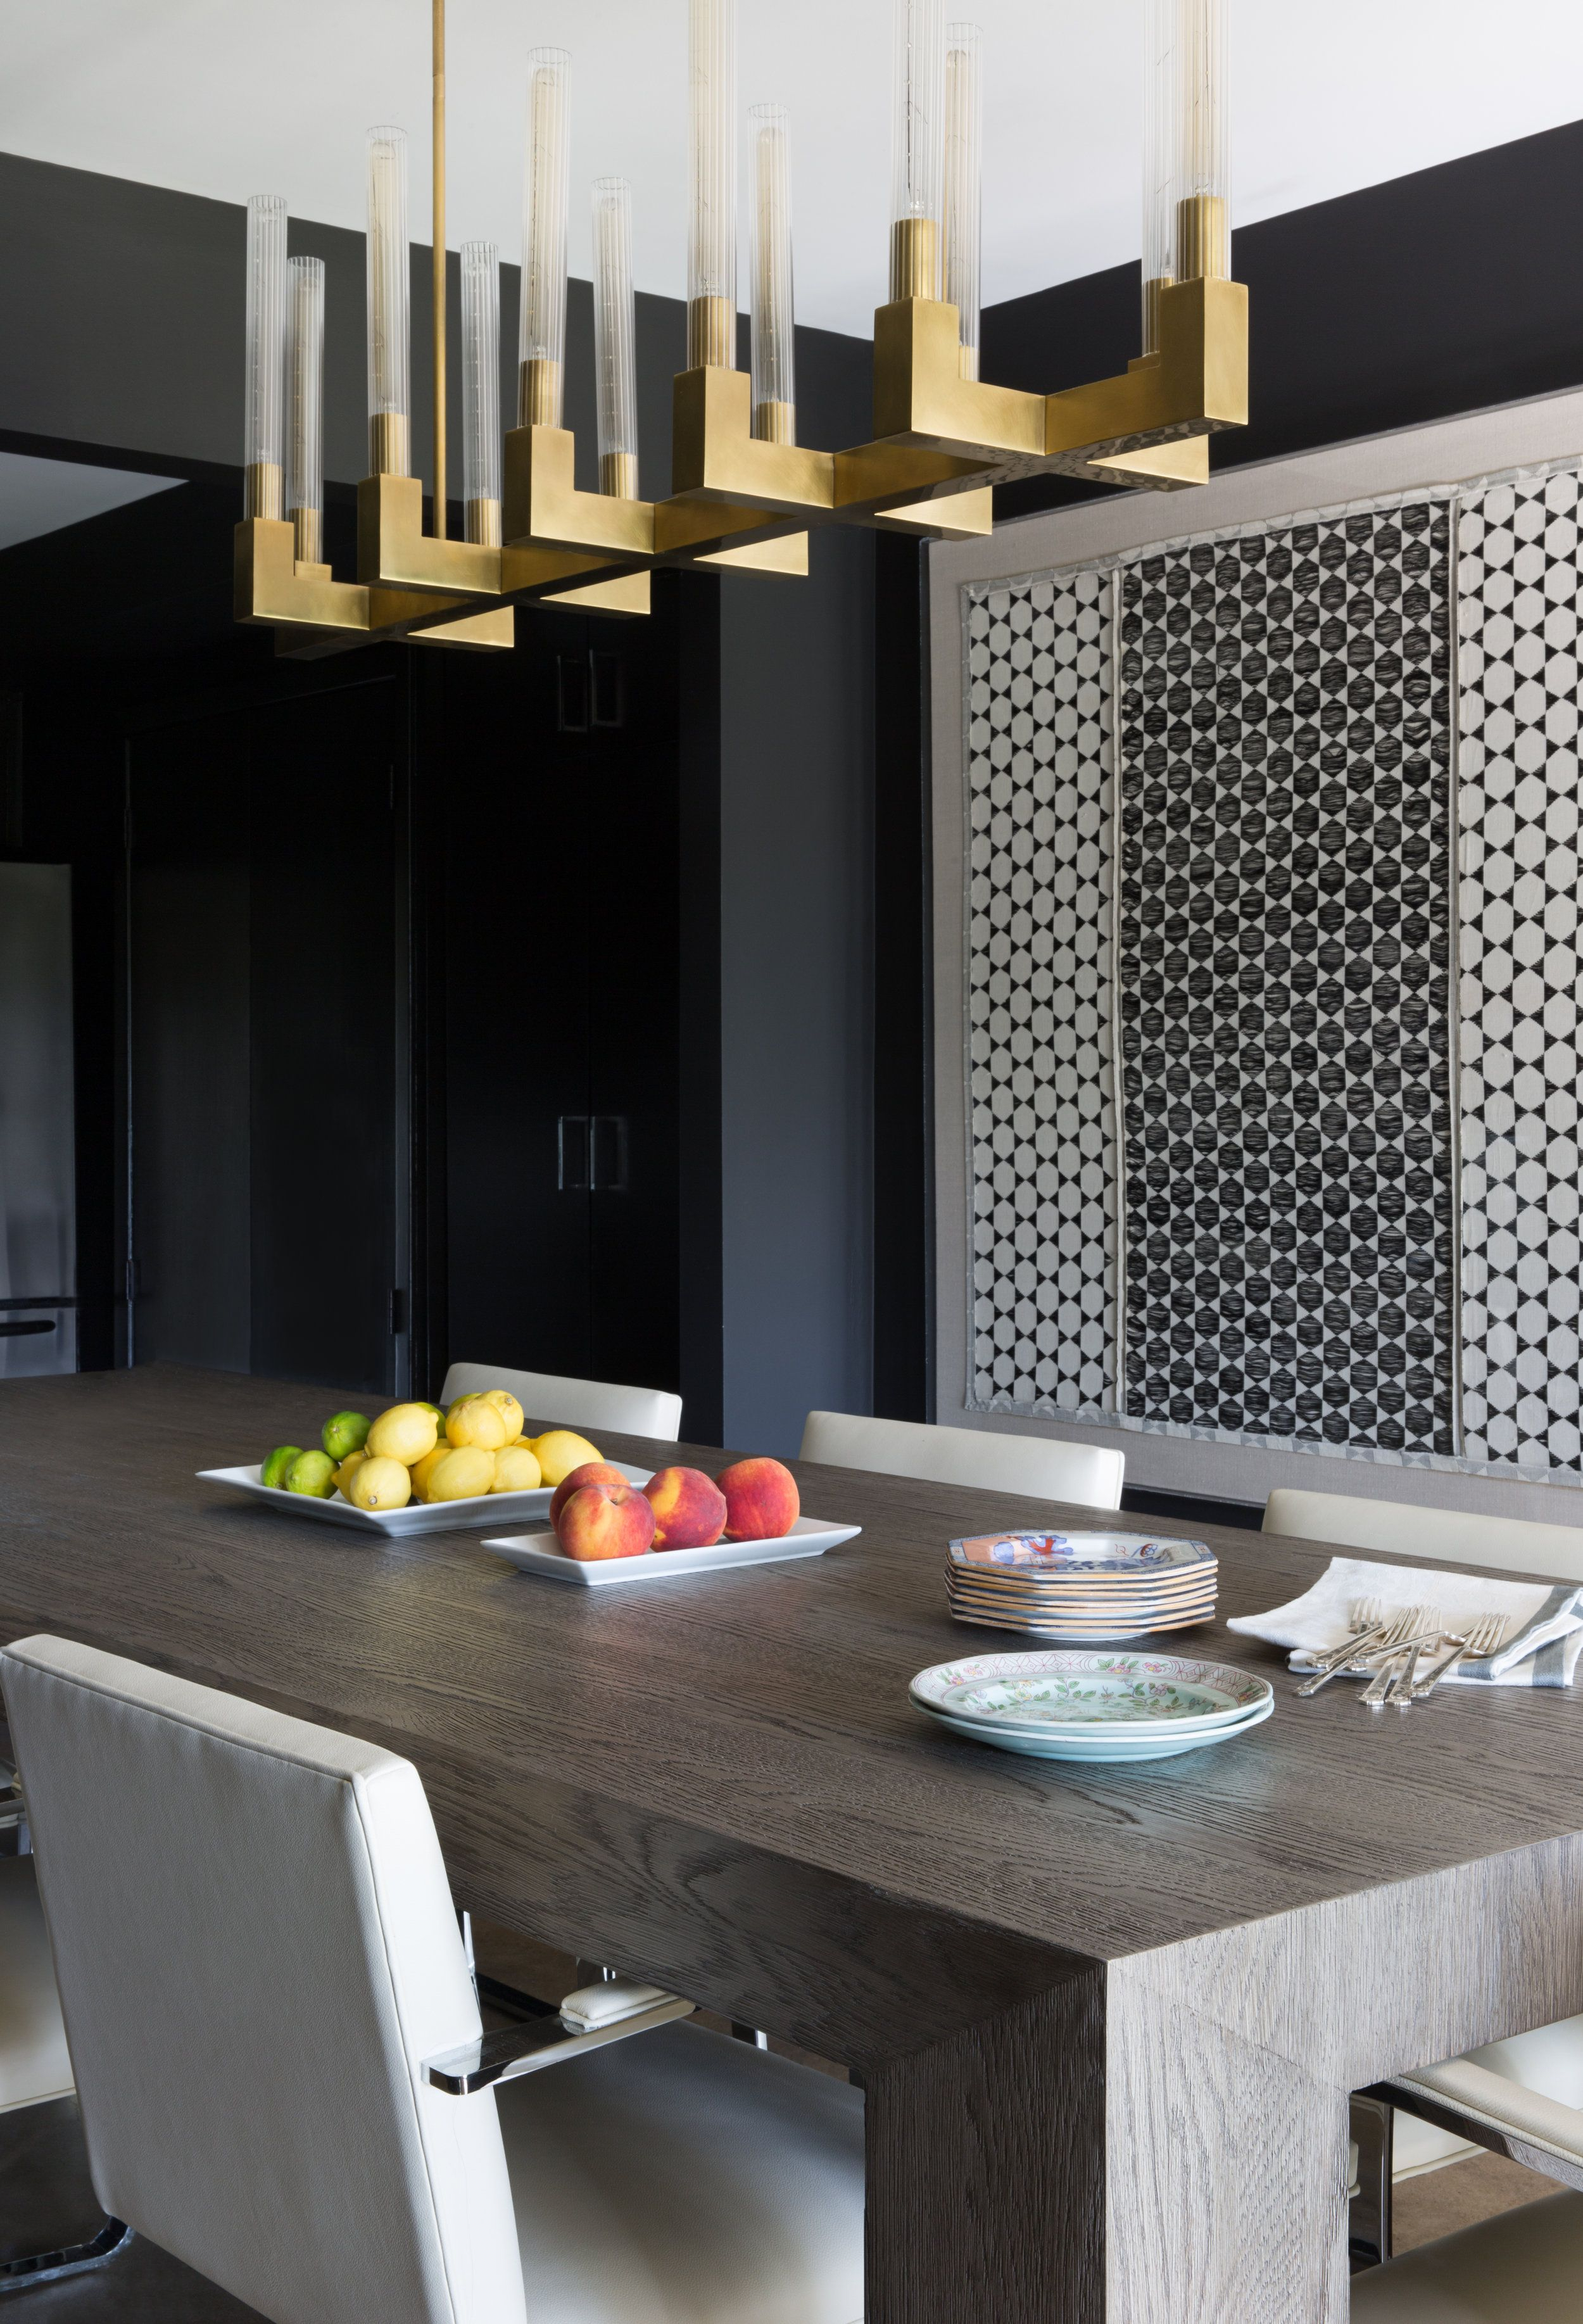 Favorite Moody Modern Dining Room With Amazing Gold Light Fixture! Love The Regarding Kaelin 5 Piece Dining Sets (#6 of 20)